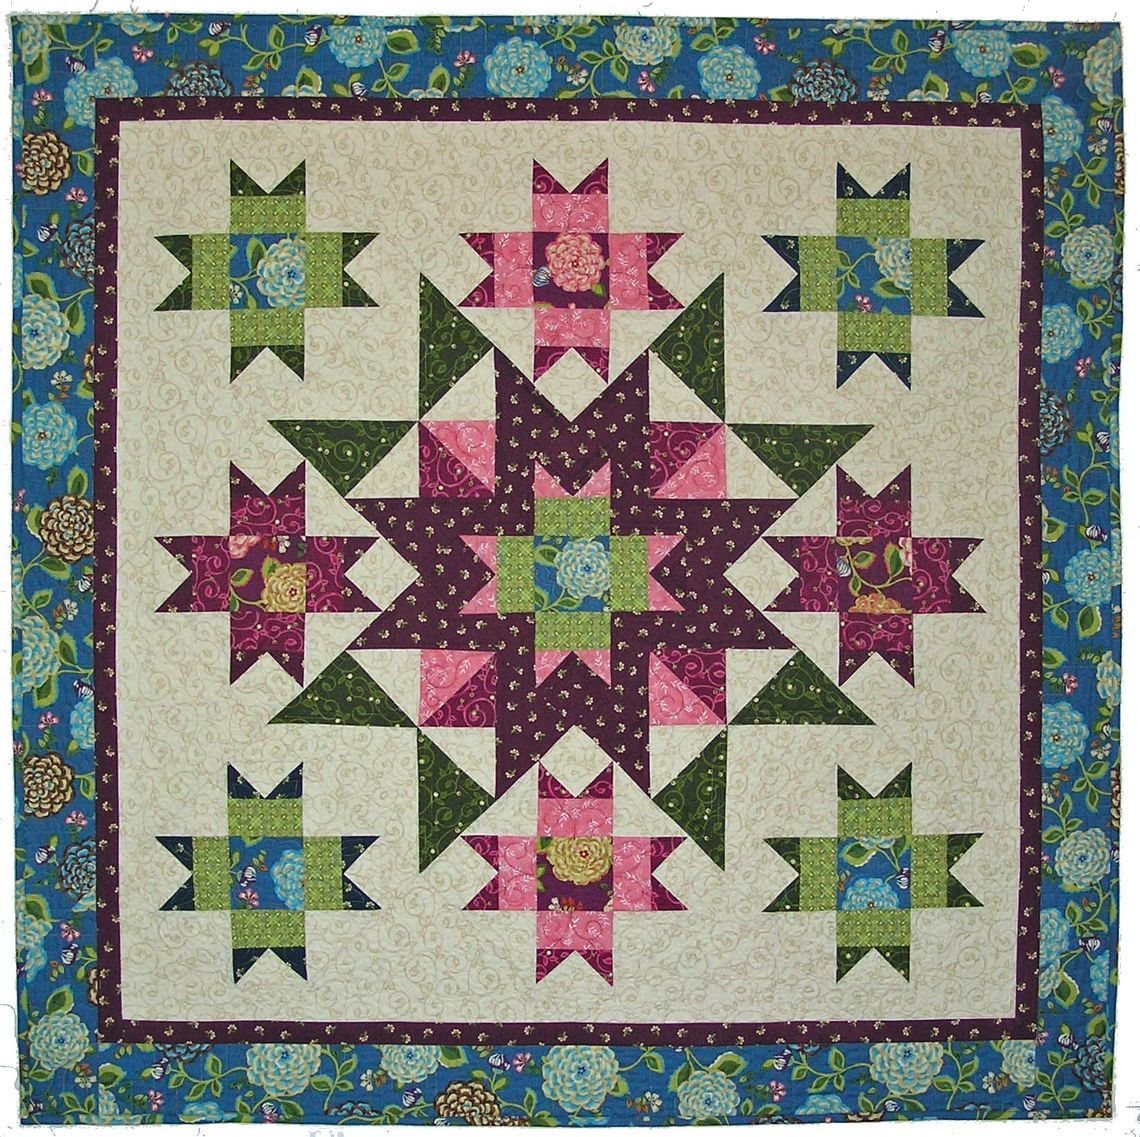 unfinished quilt me img centre blogged mystery here sew medallion p originally